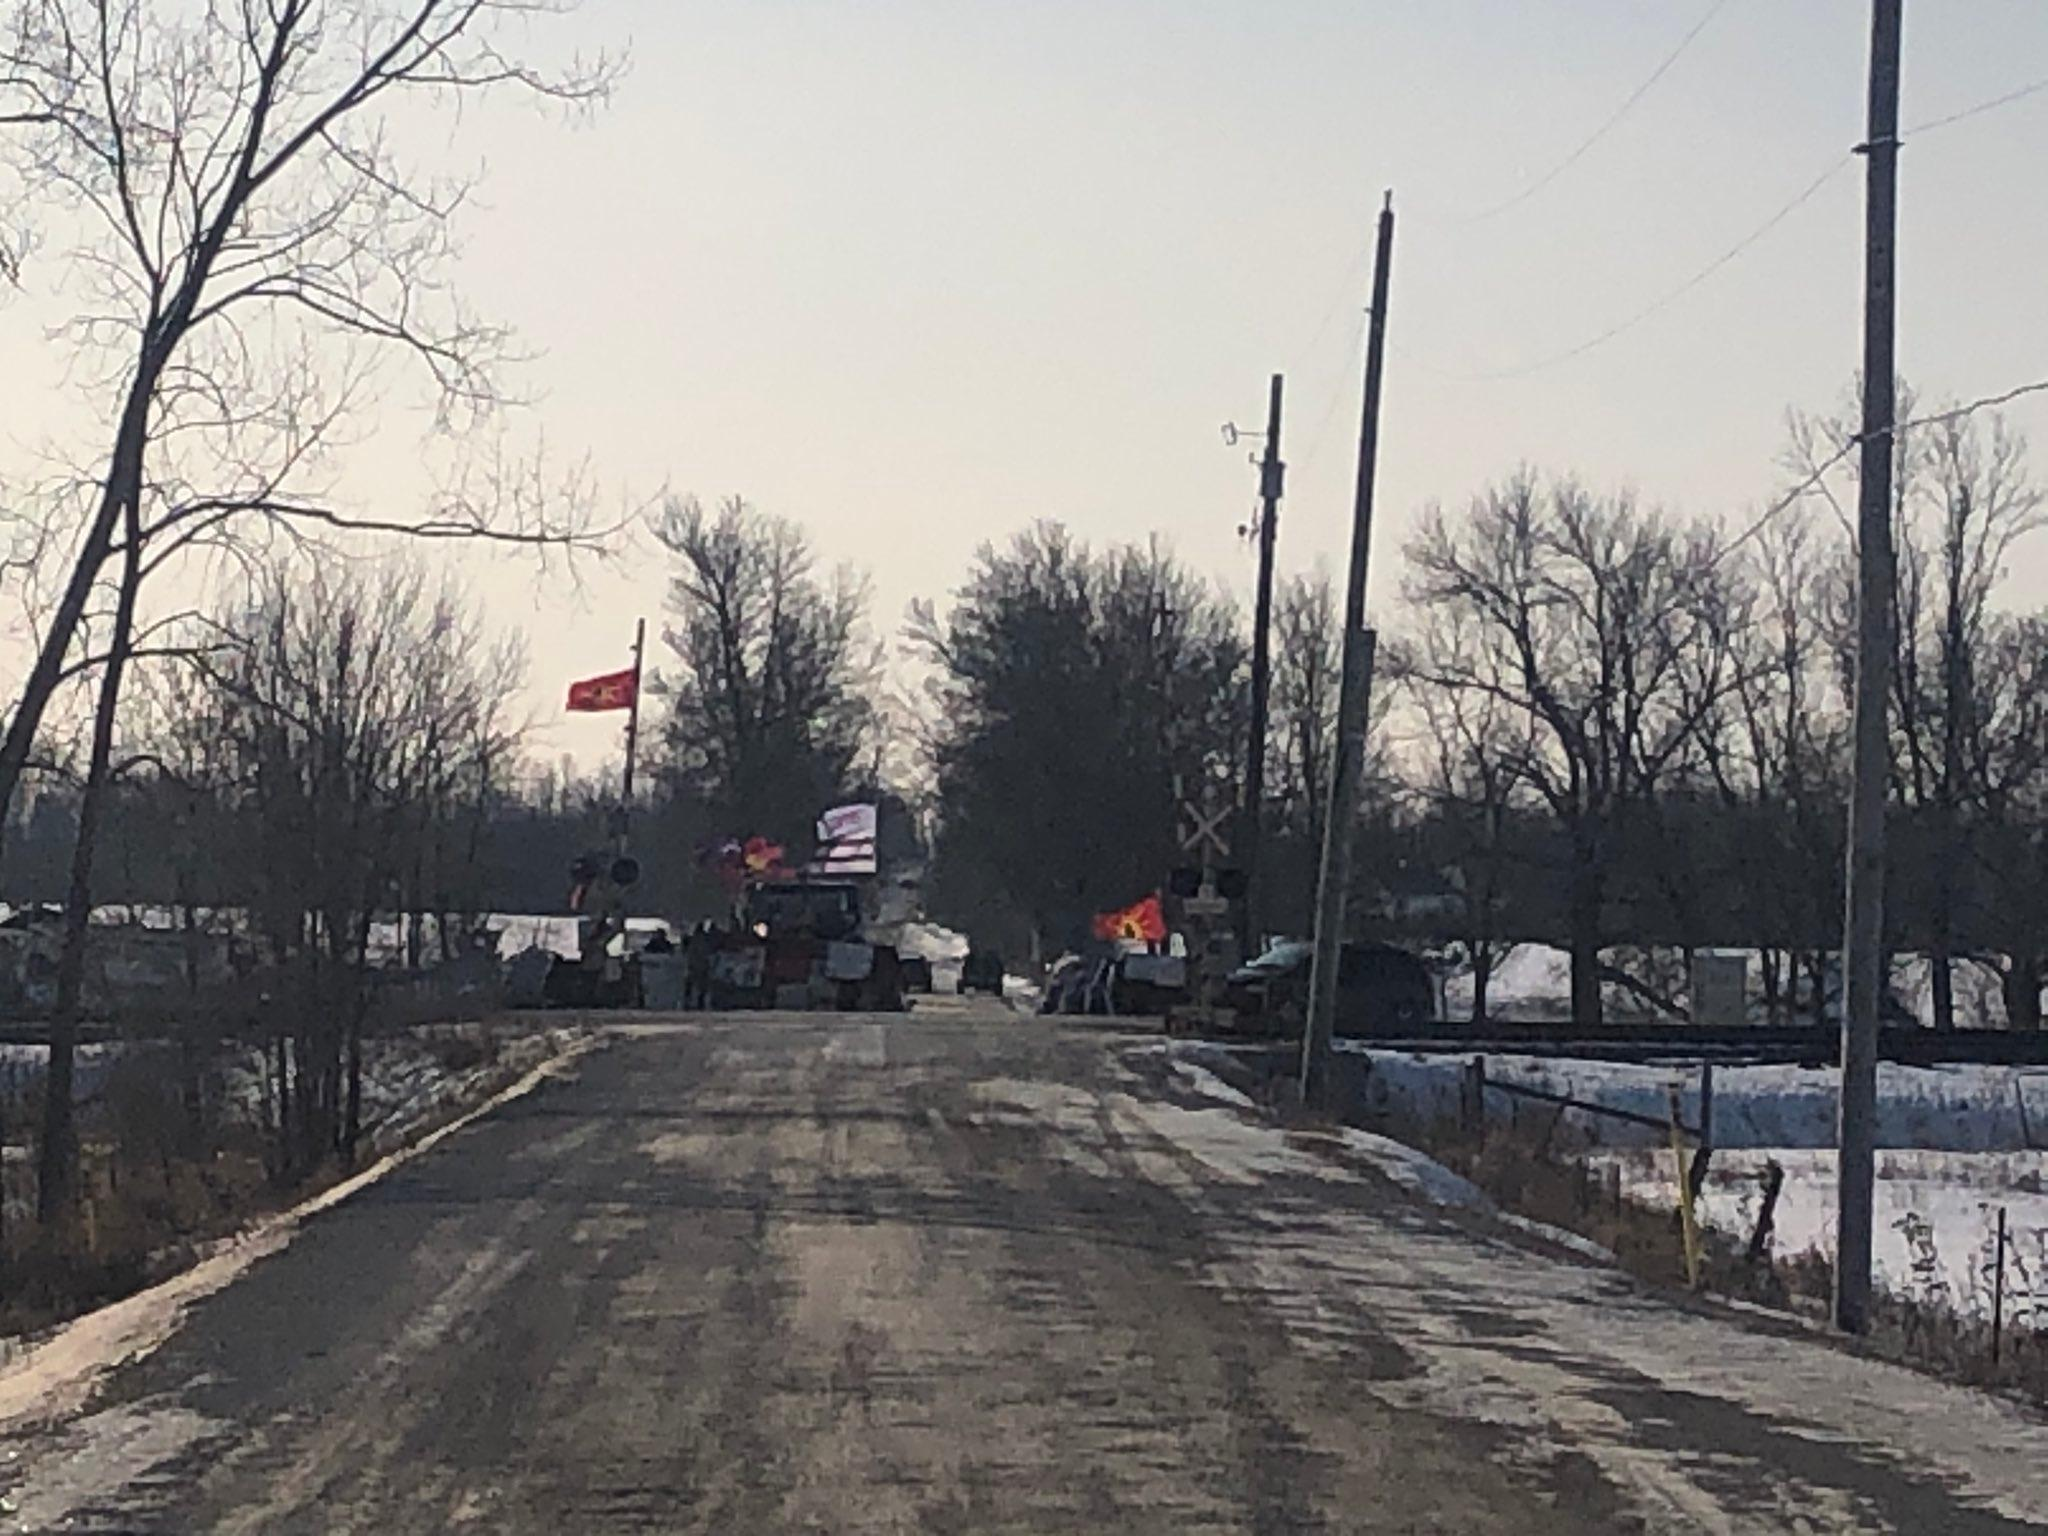 Tyendinaga blockade, Sunday Feb 23, 2020